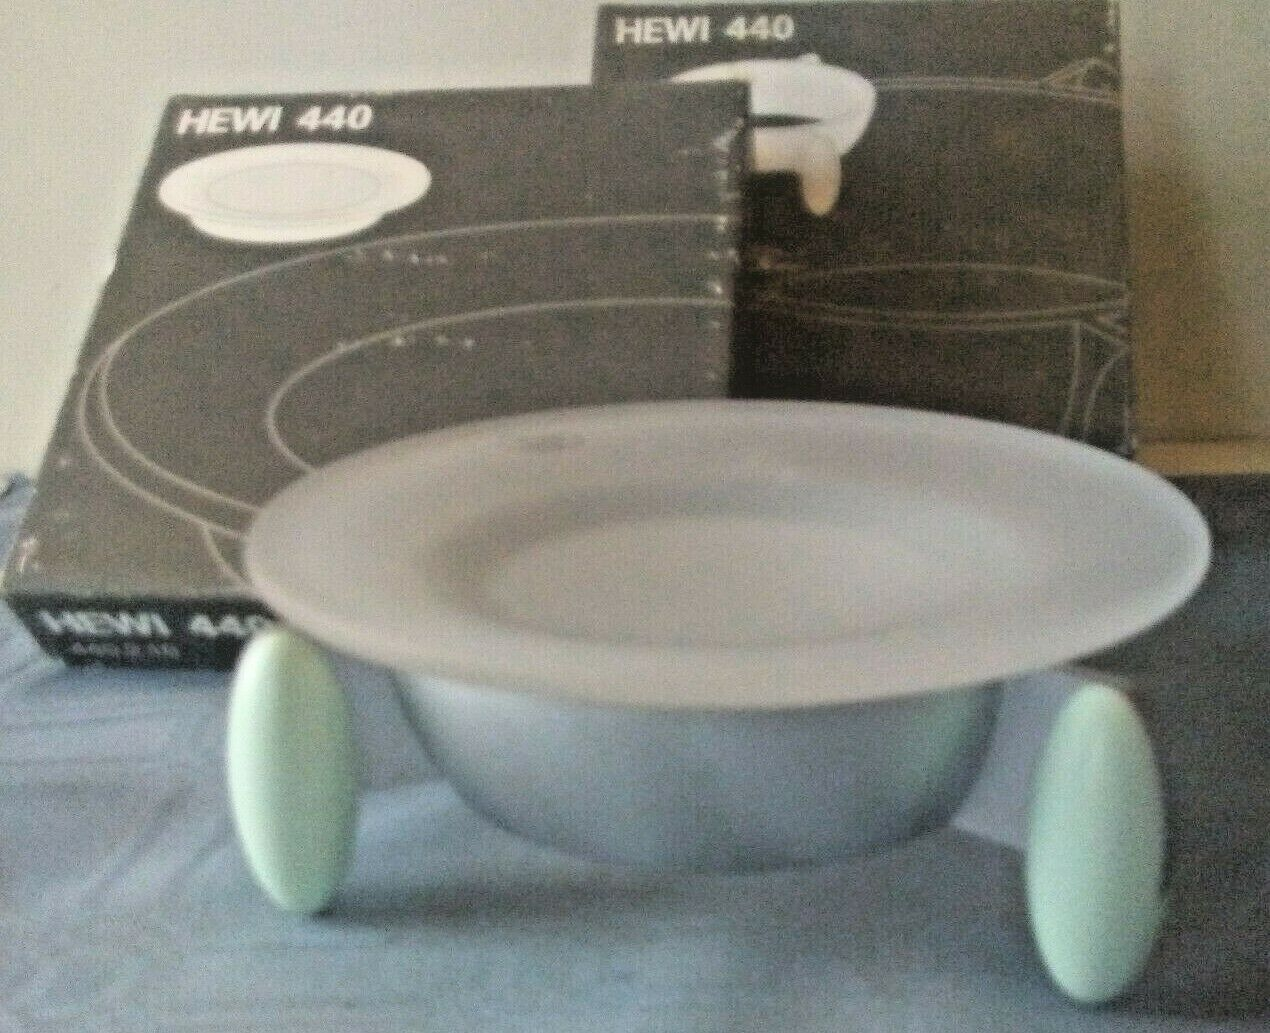 IHewi 440 Soap Dish Holder,/Dish, Euro Style No. 440.2.200, Teal Accent, NIB